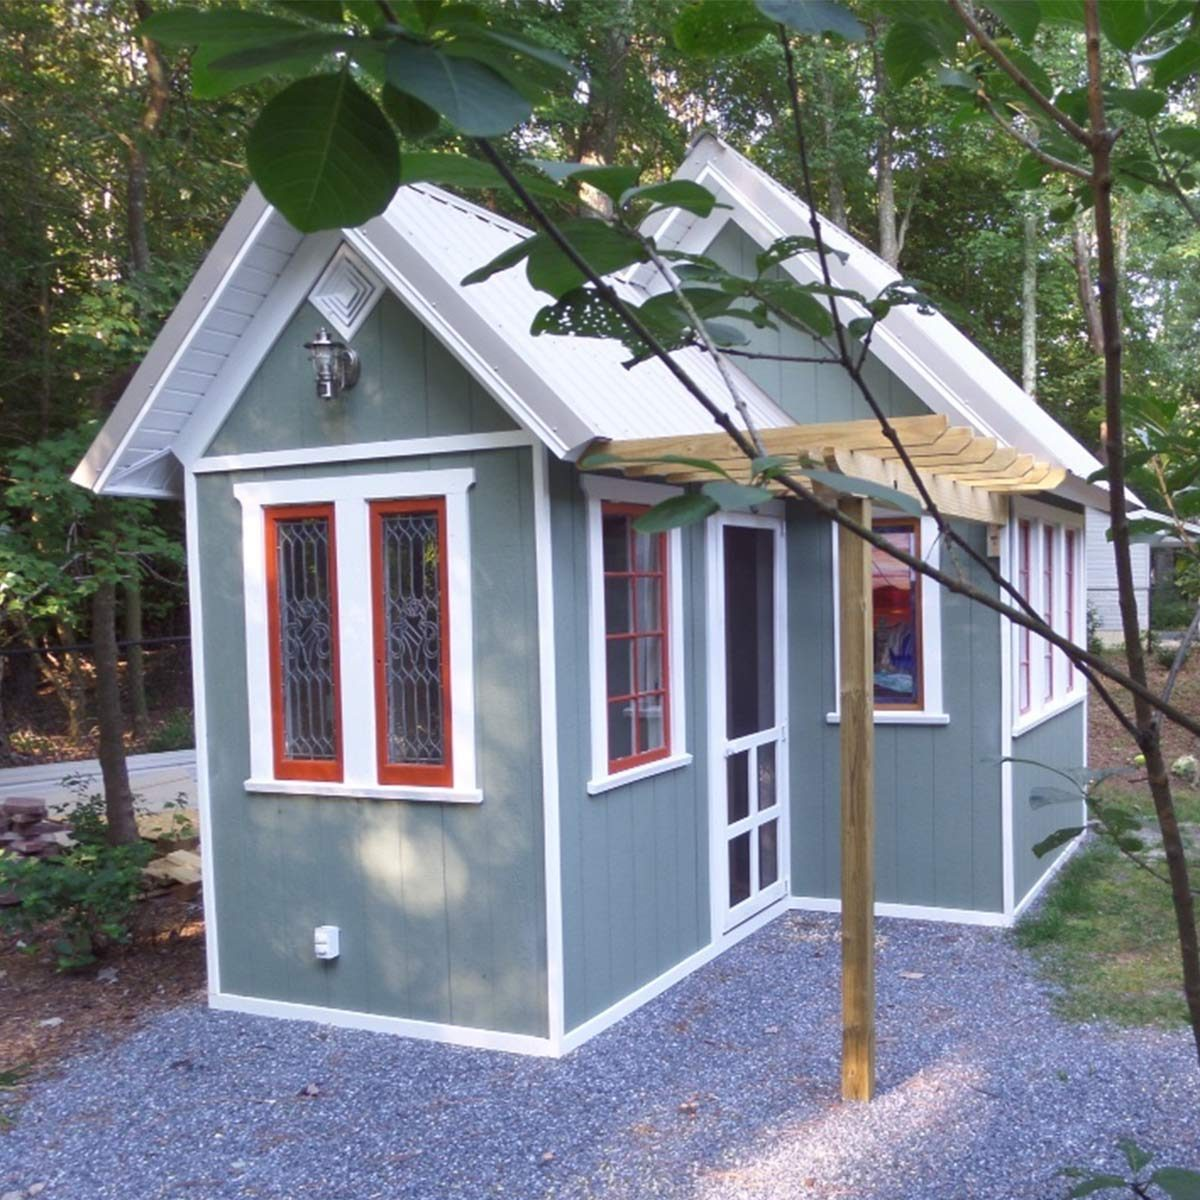 finished garden shed built by reader